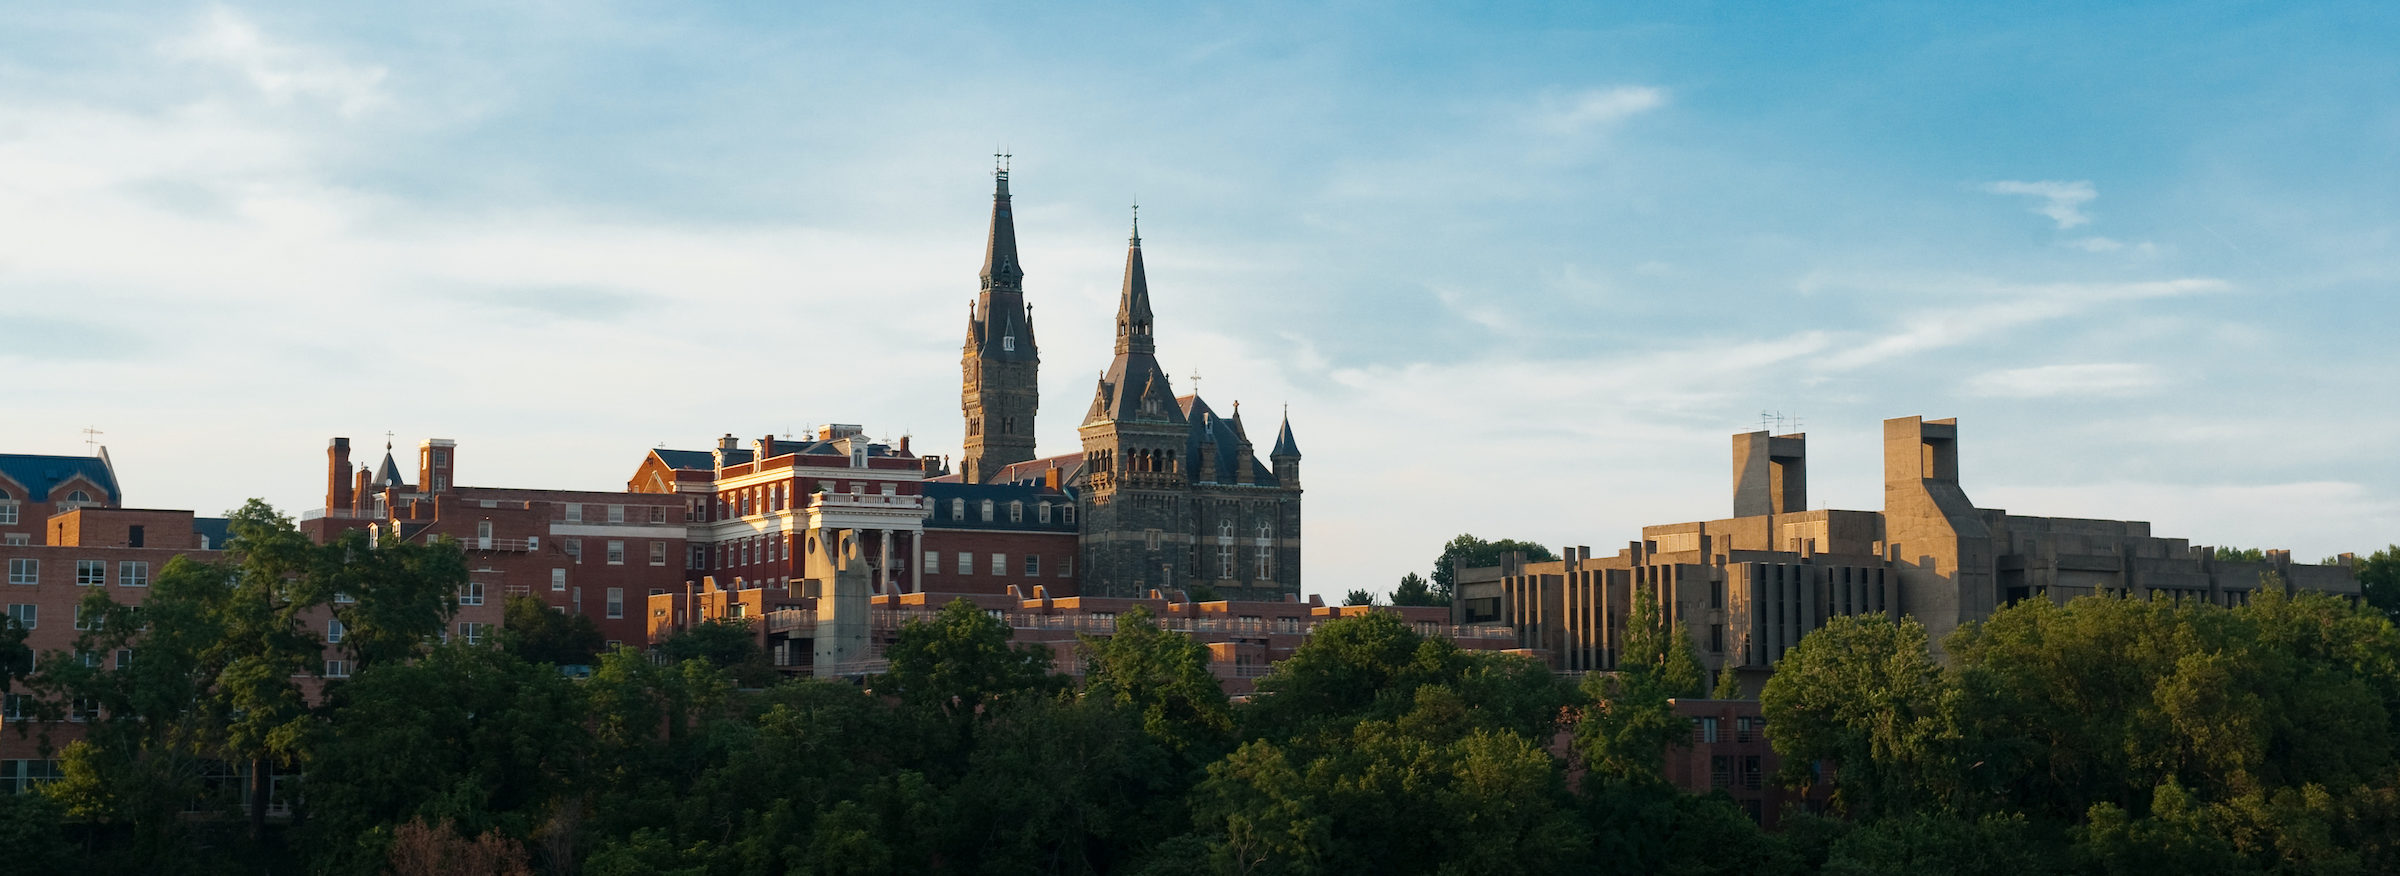 Georgetown University campus photographed from a distance